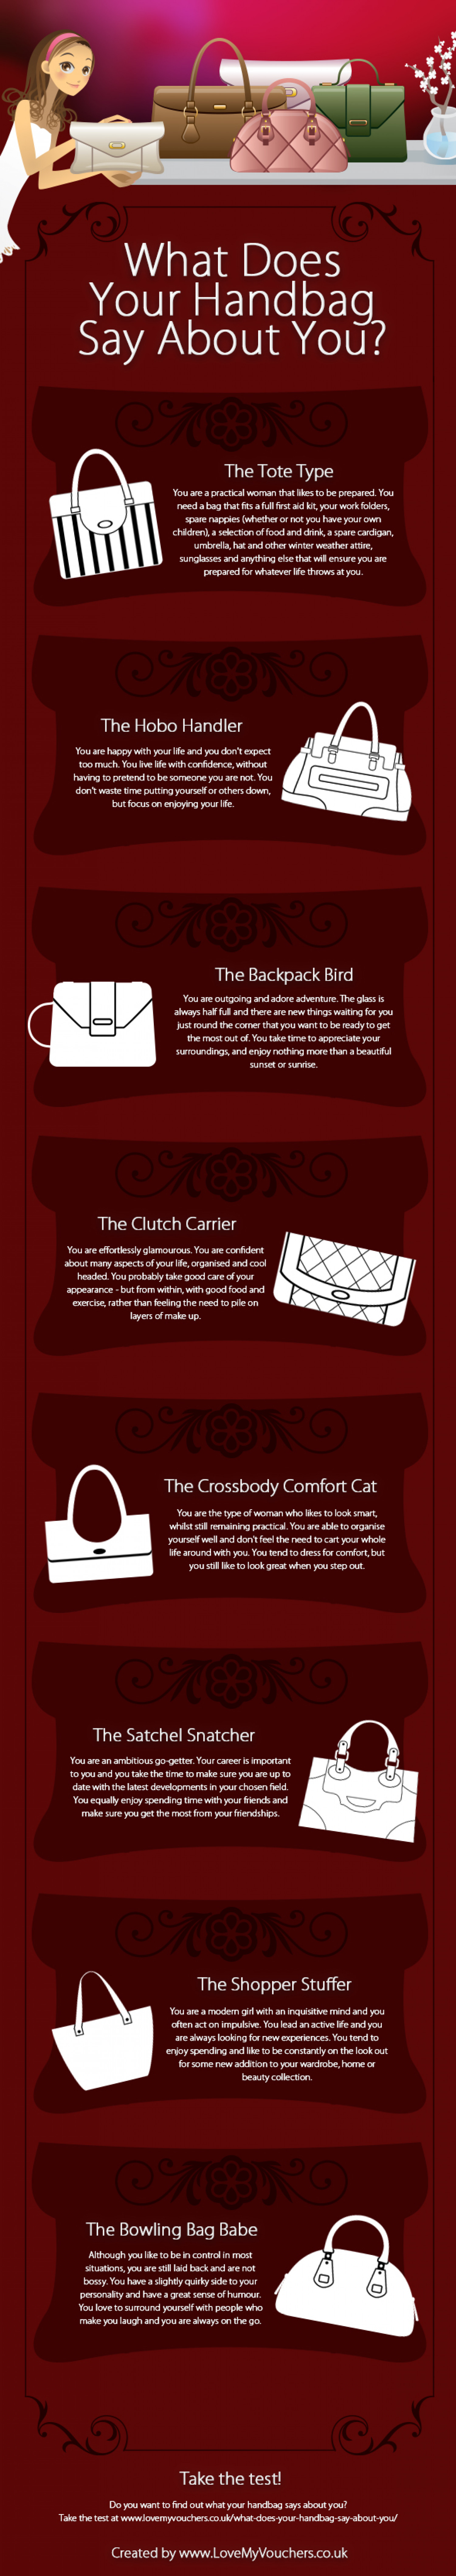 What Does Your Handbag Say About You? Infographic